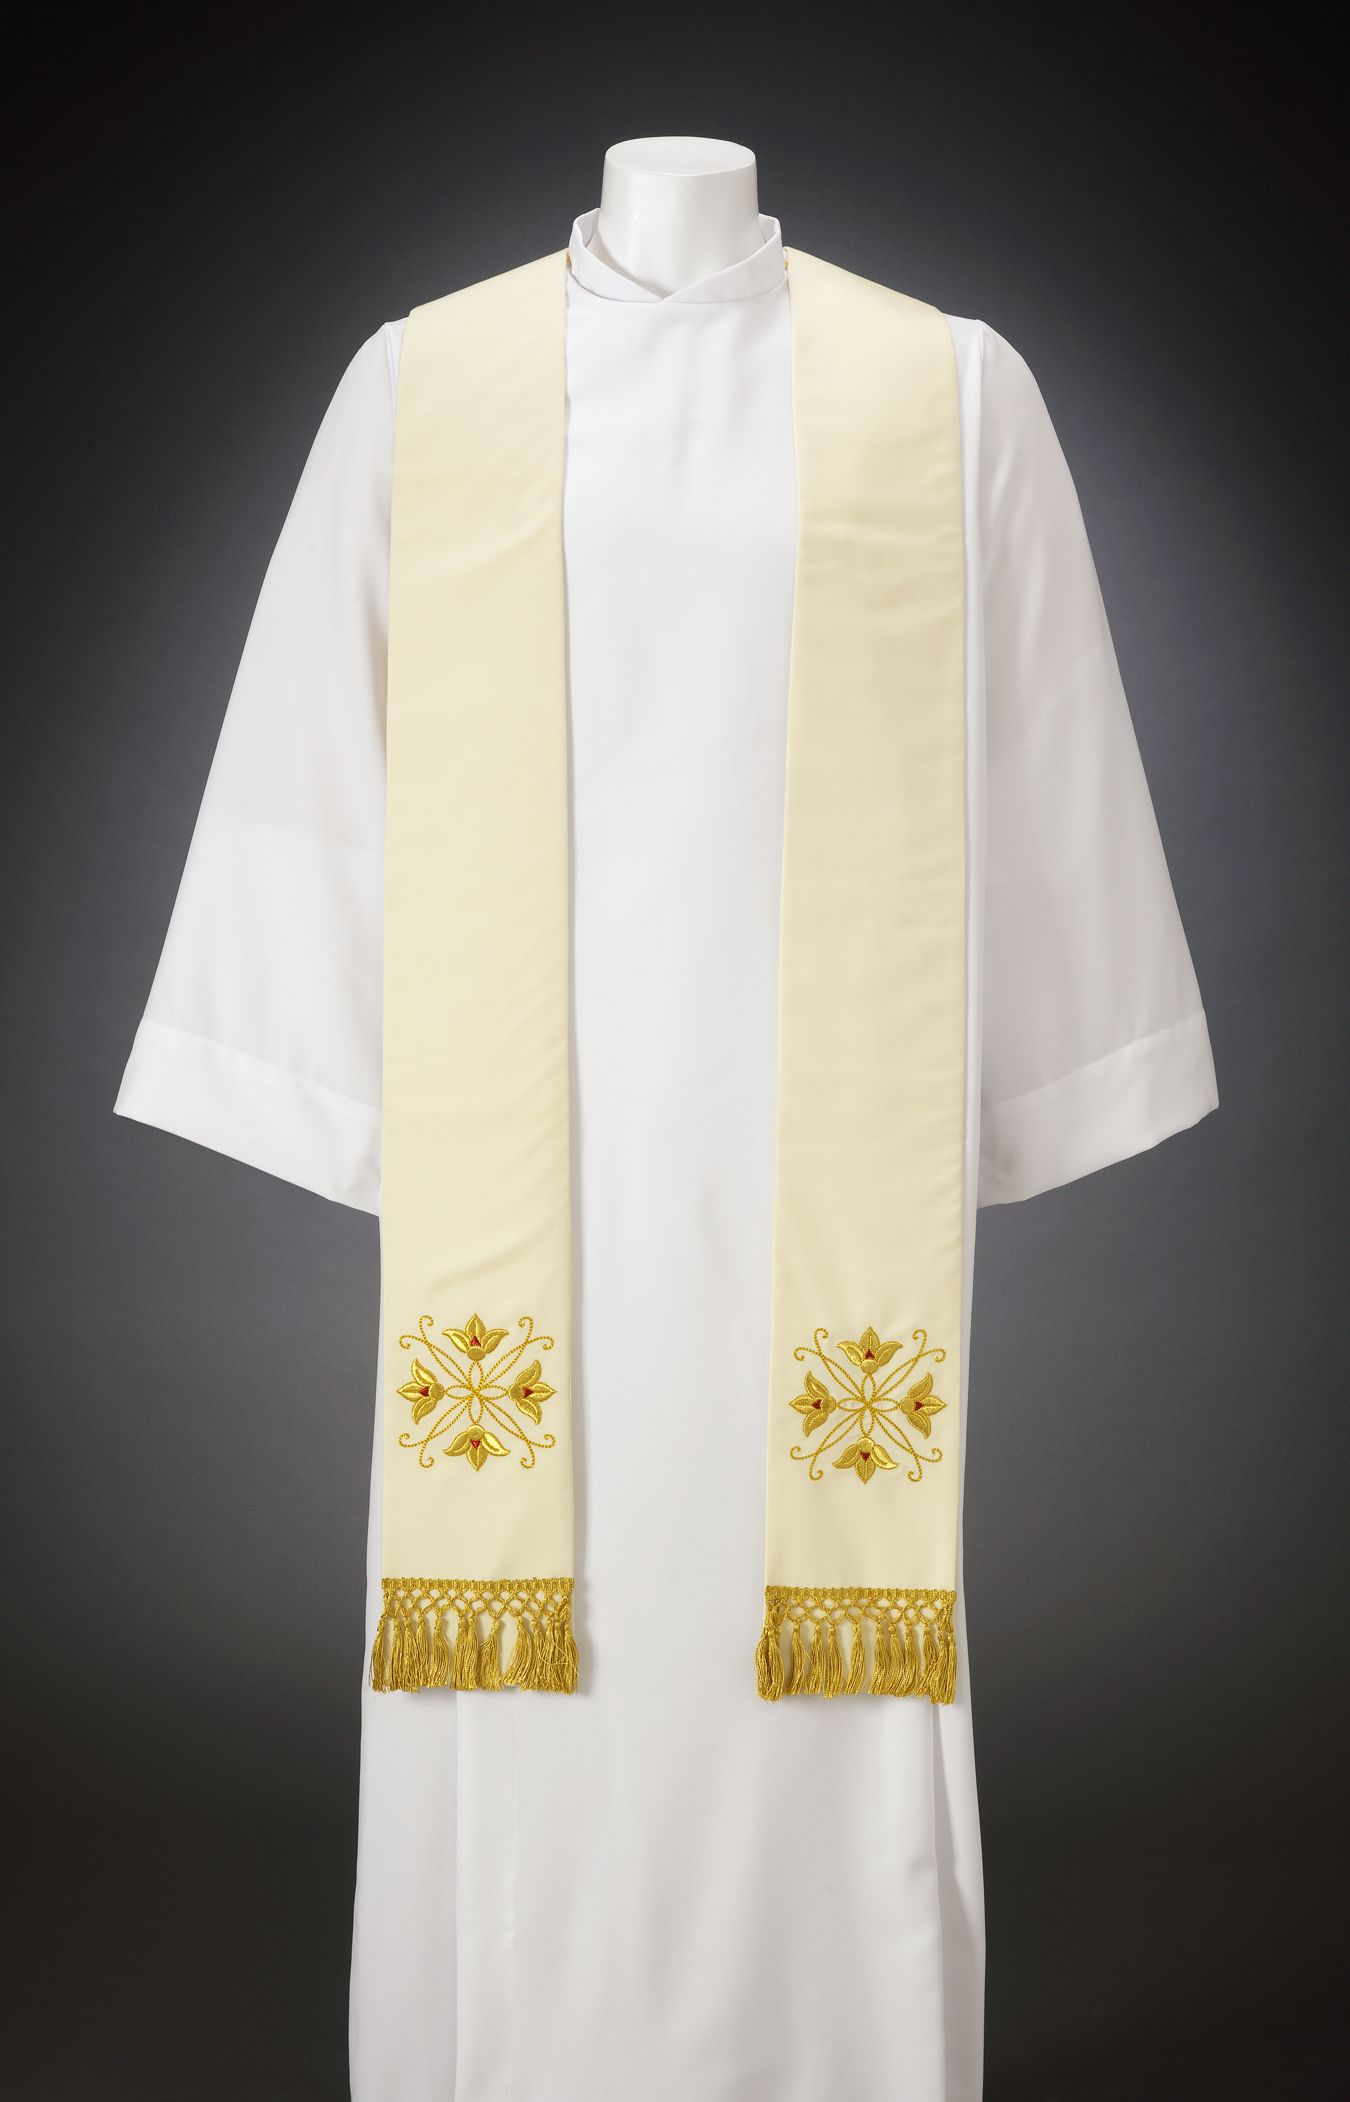 When Deacons Are Ordained They Receive A Stole Which Is A Type Of